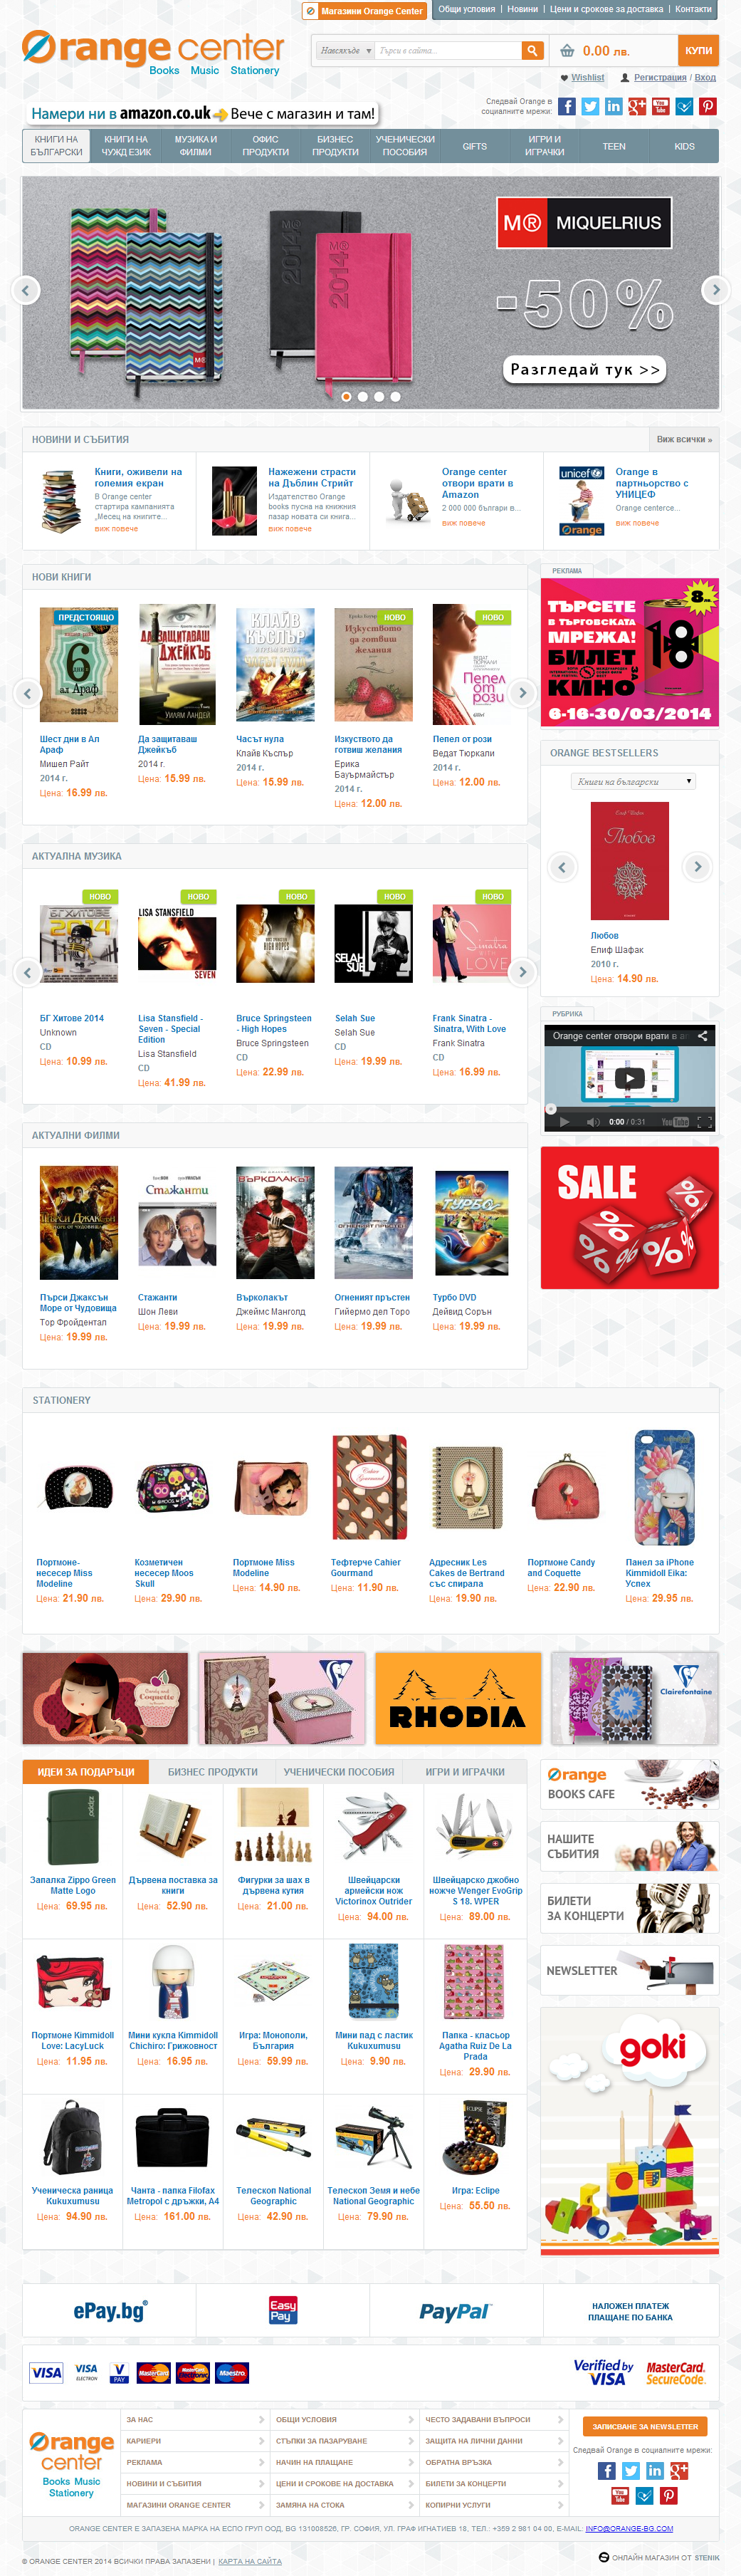 Online store retail chain ORANGE CENTER, Orange Center - Online Shops, Stenik, Magento